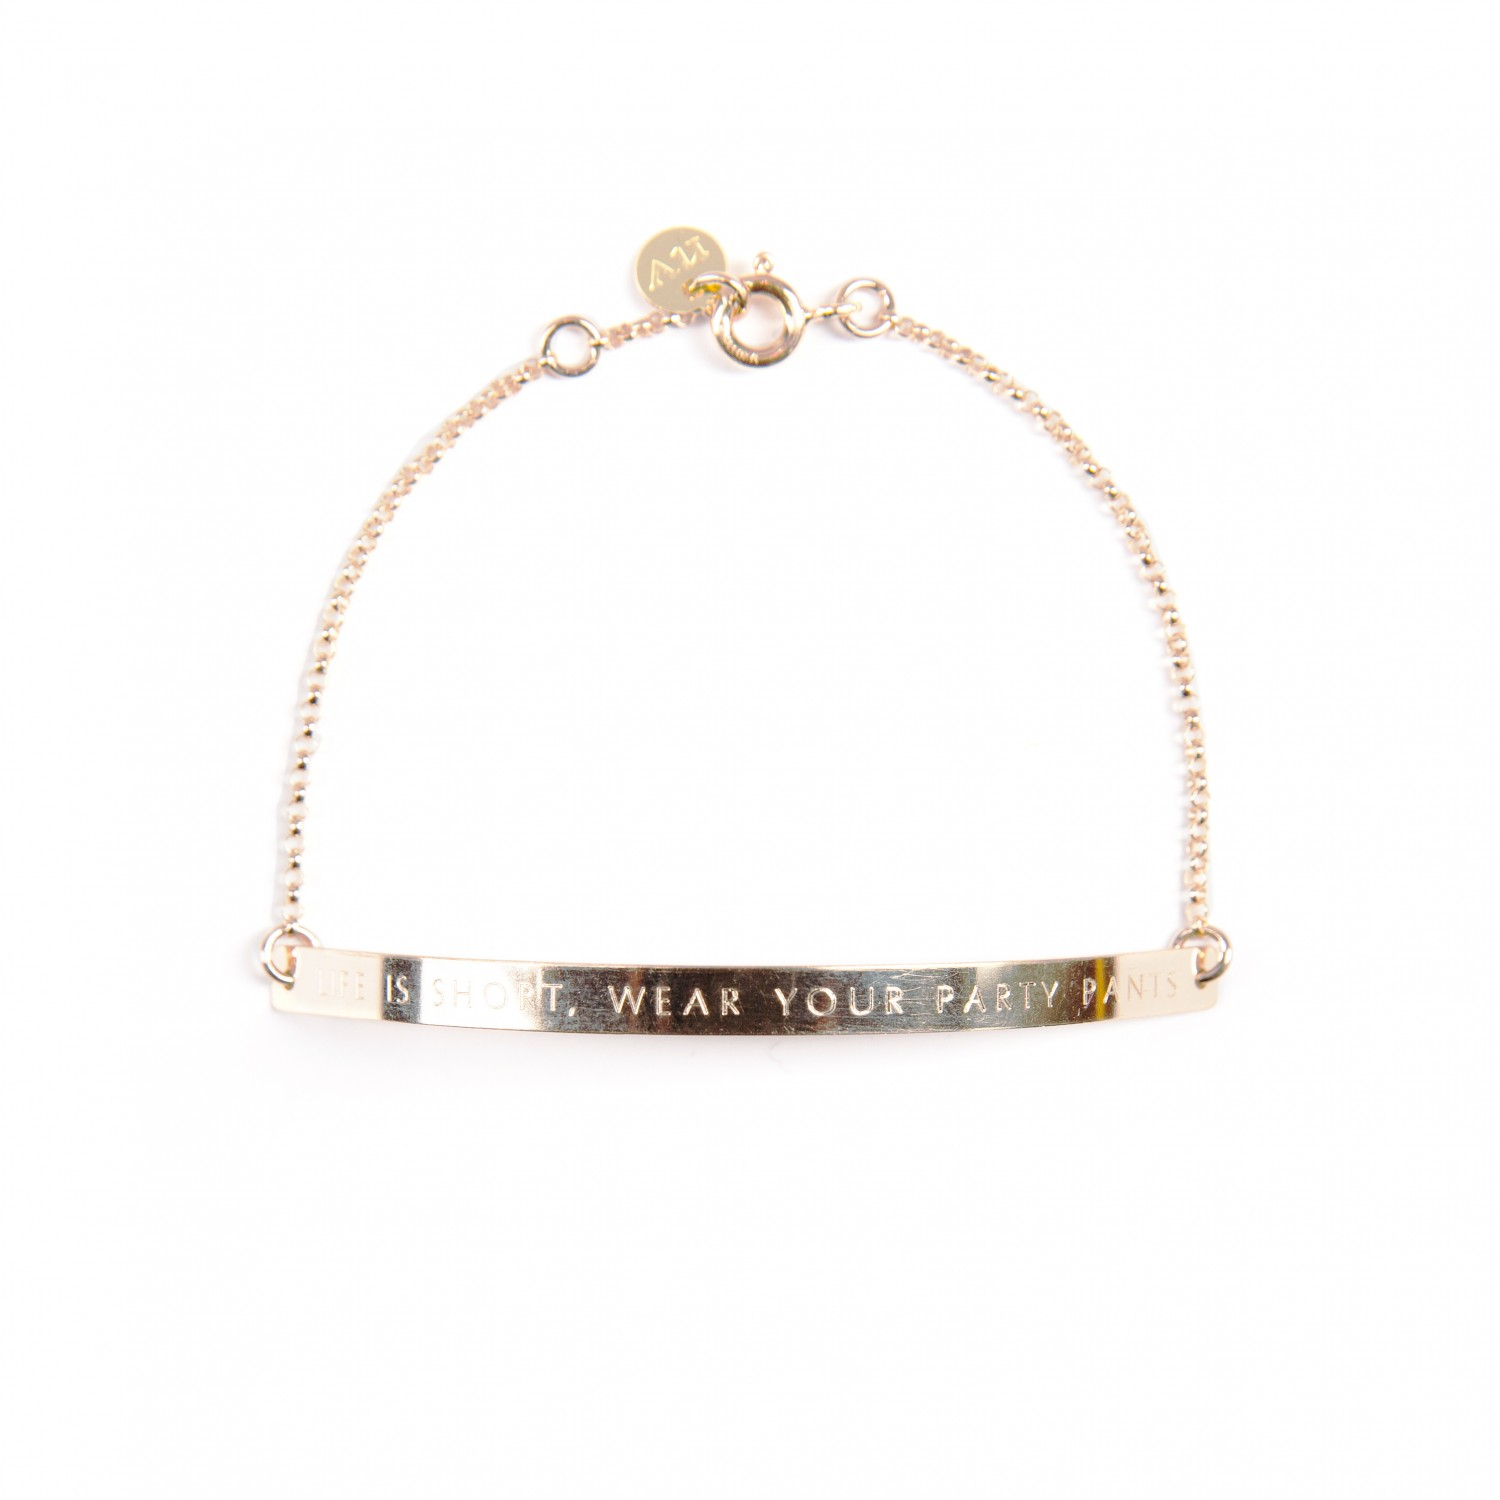 ba97db922fc long bar bracelet New Vintage by Kriss – Eesti Disaini Maja ...